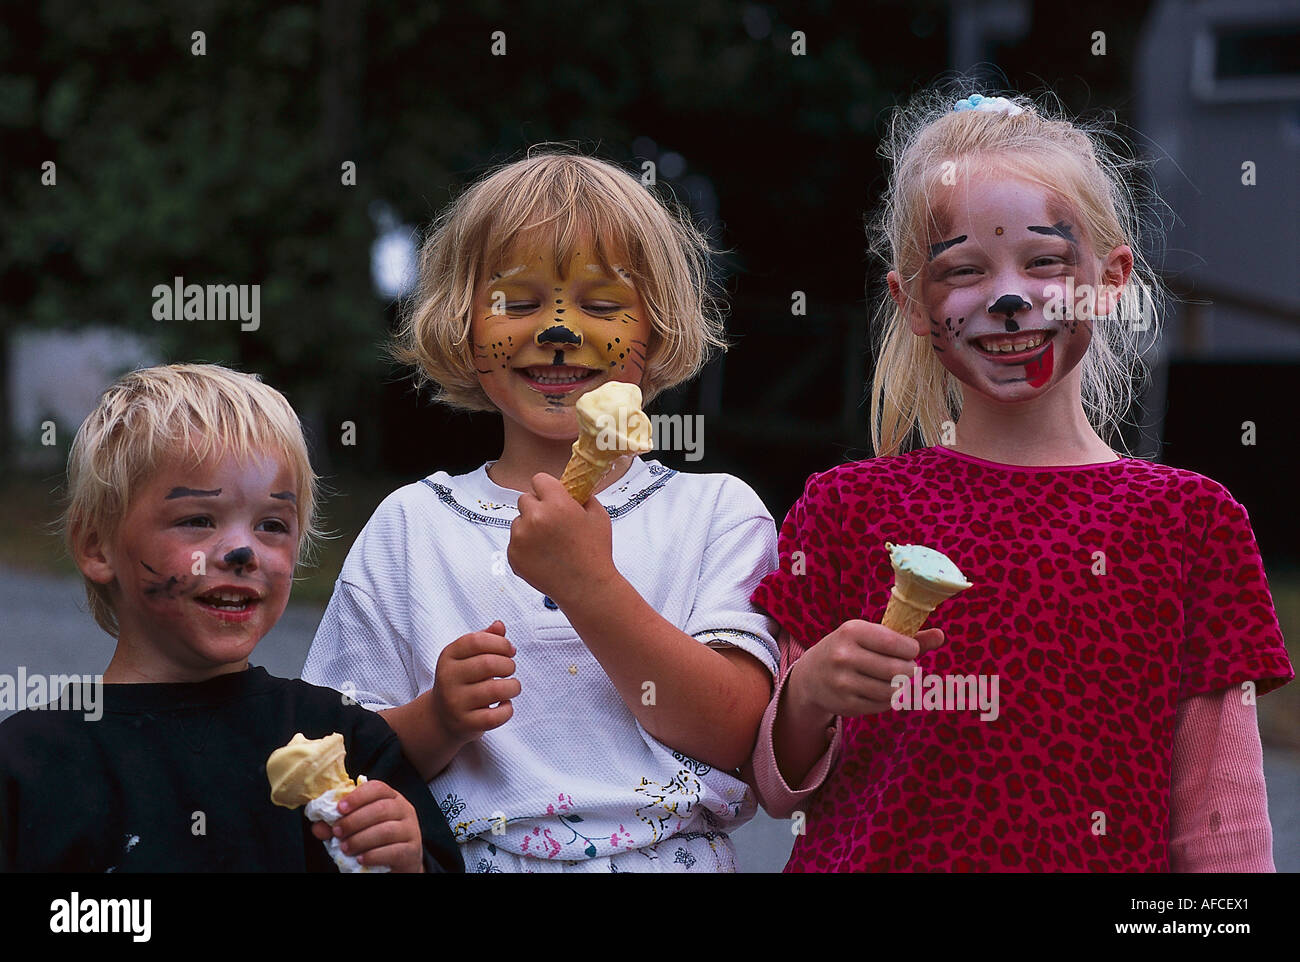 Painted Faces, National Seal Colony, Near Gweek Cornwall, England - Stock Image